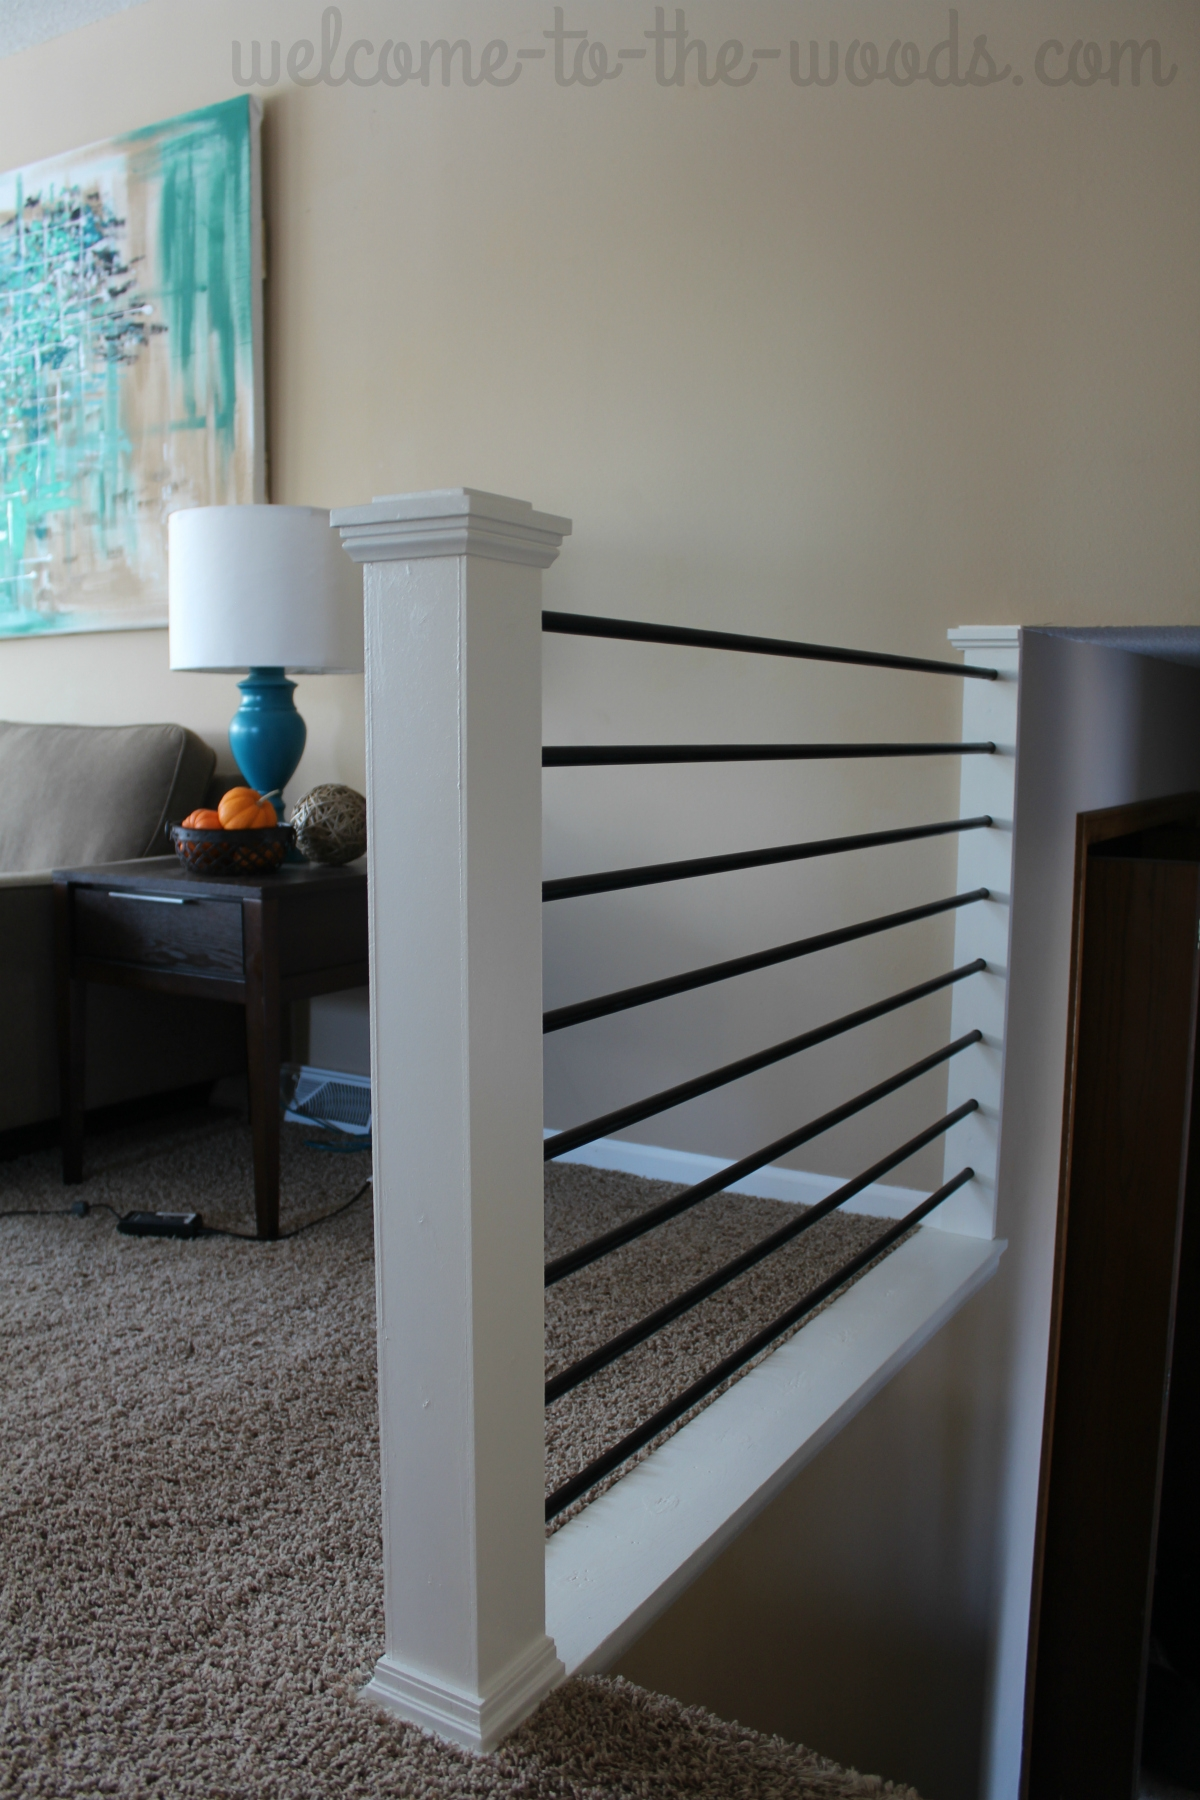 Stair Railing Diy Makeover   Diy Farmhouse Stair Railing   Country Style   U Shaped   Horizontal Bar   Upcycled   Low Cost